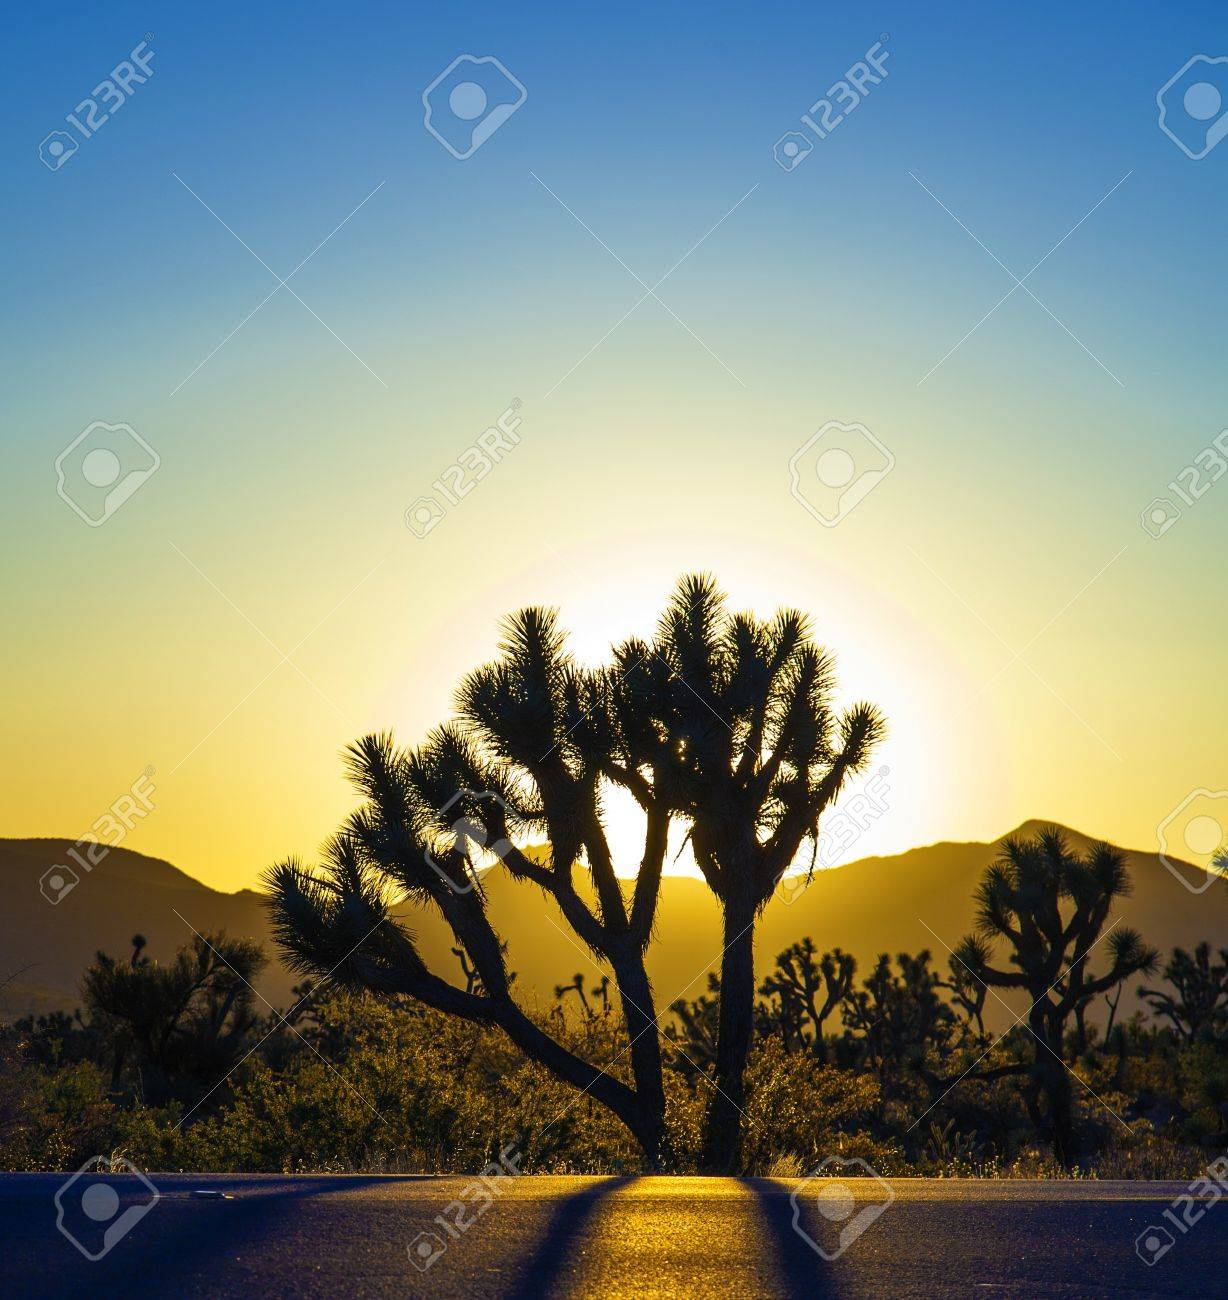 joshua trees with mountains in golden sunset Stock Photo - 14675170